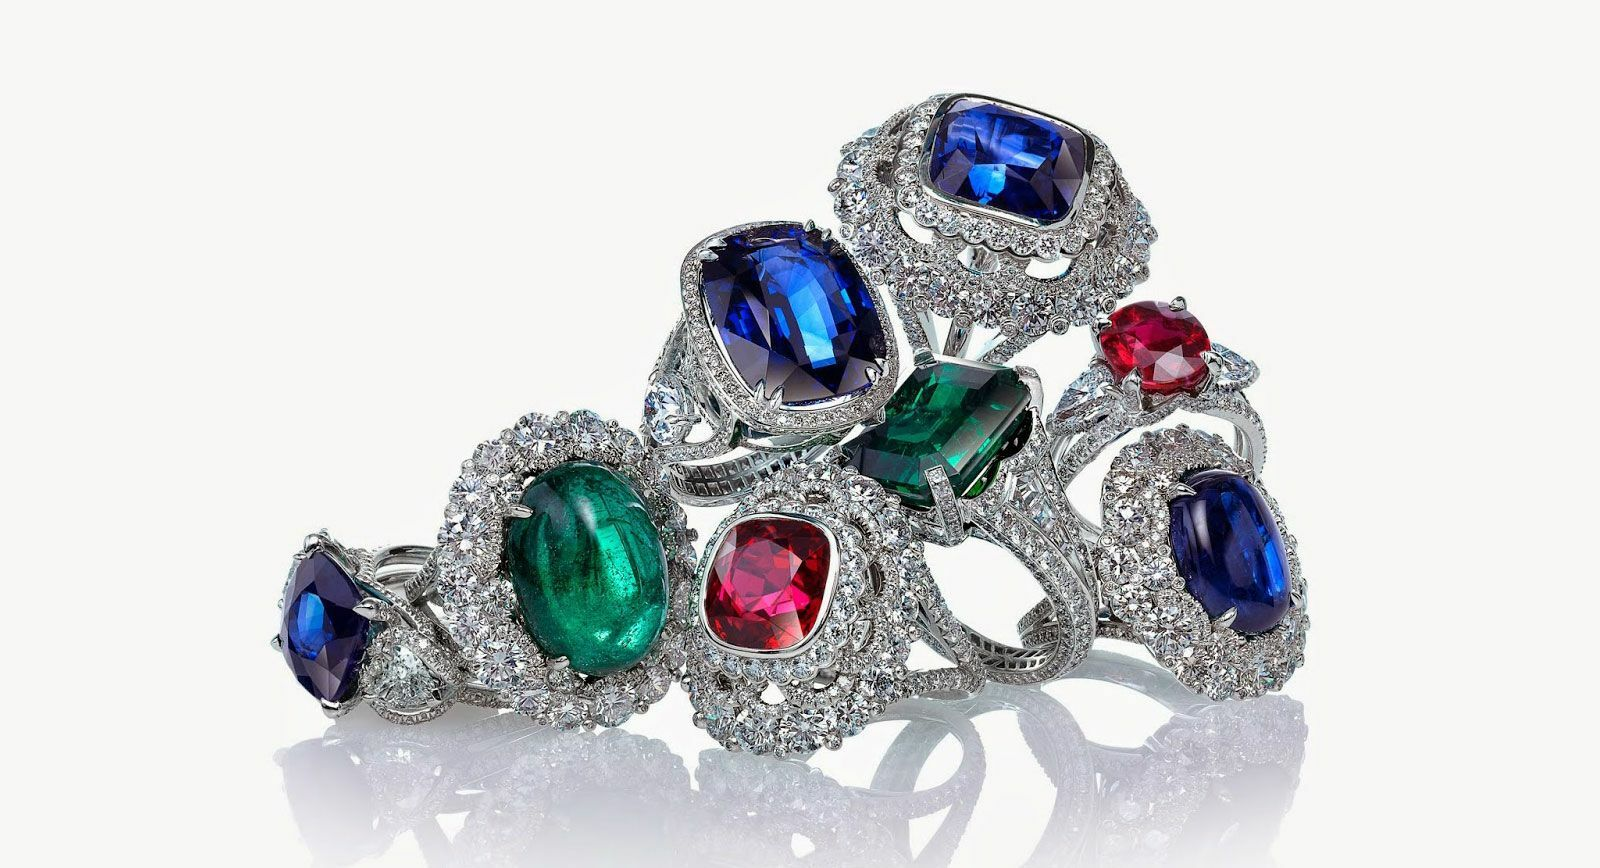 Devotion Collection by Fabergé: Jewellery Art in Bright Colours